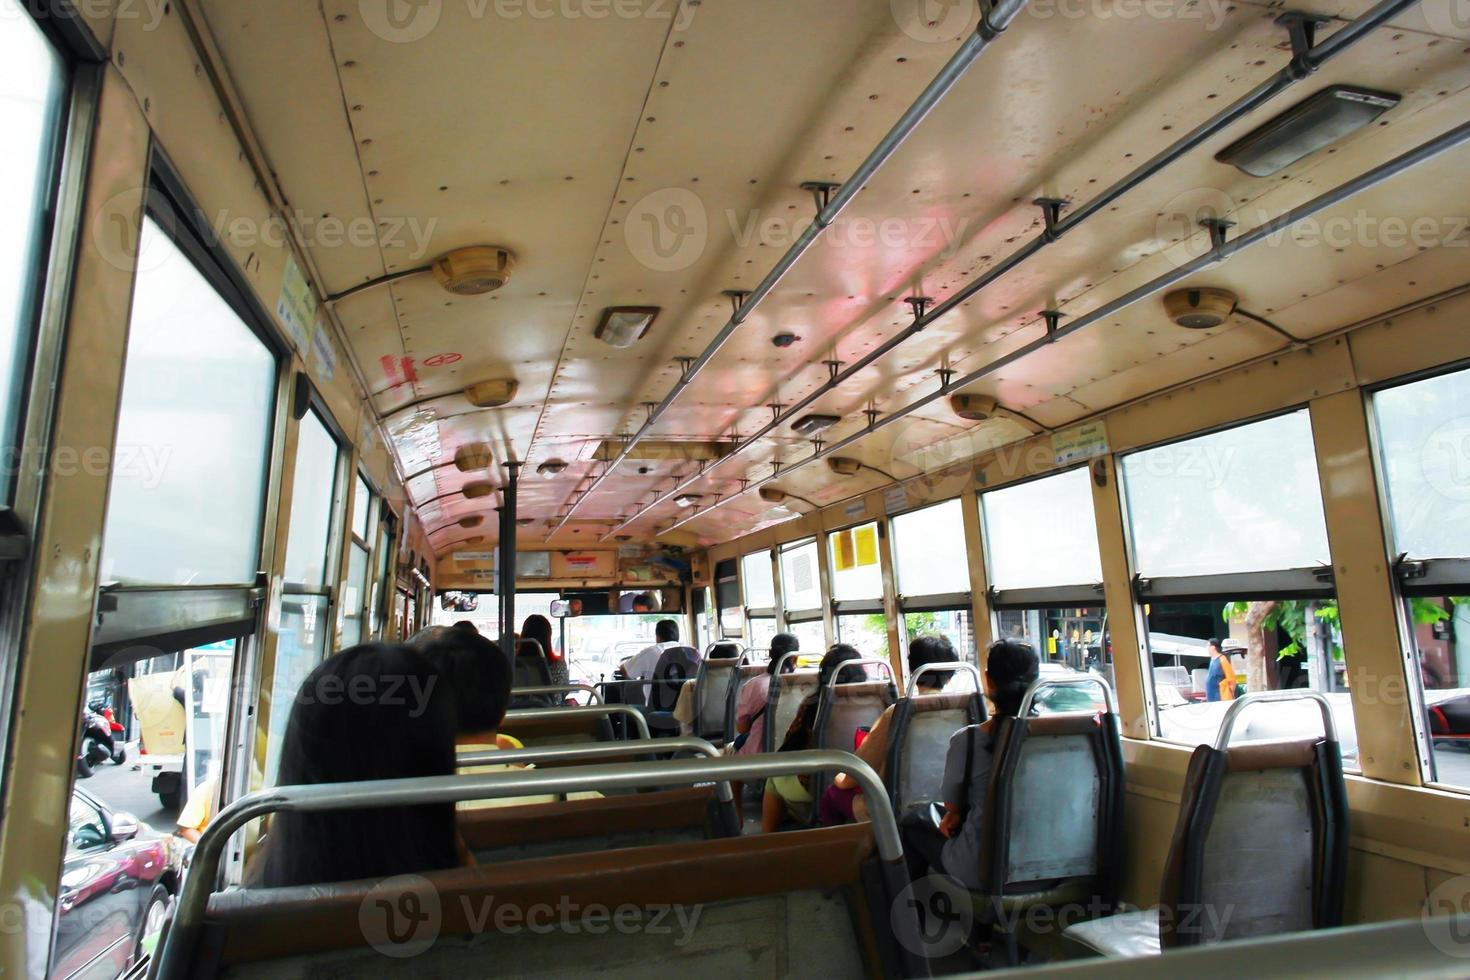 on the bus photo